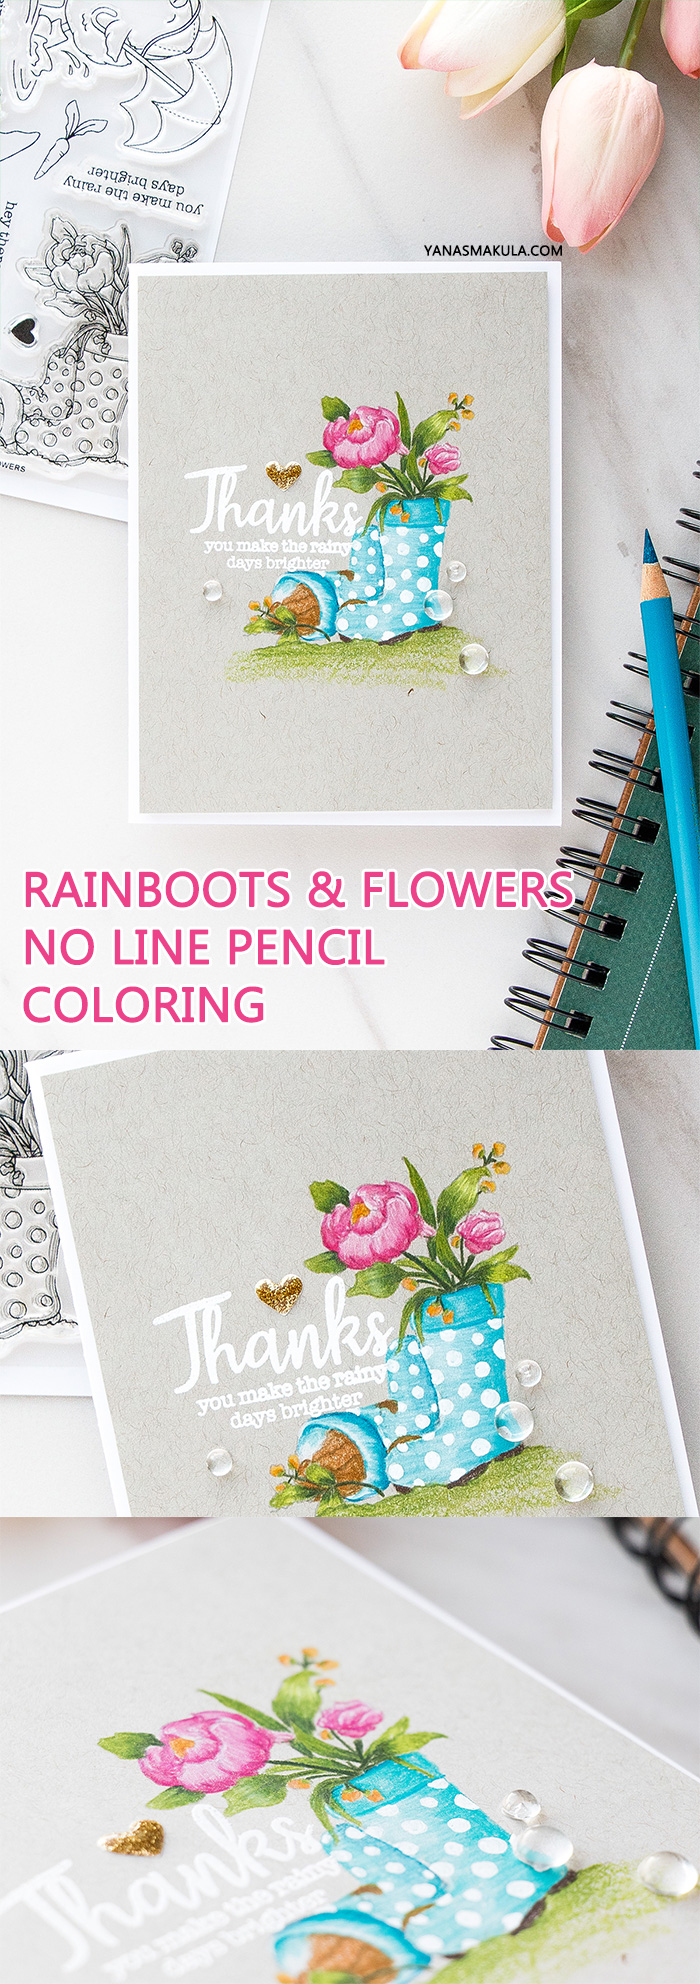 Simon Says Stamp | Rainboots & Flowers - No Line Pencil Coloring using Simon Says Clear Stamps SHOWERS & FLOWERS SSS101822 #stamping #adultcoloring #nolinecoloring #springcard #cardmaking #sssck